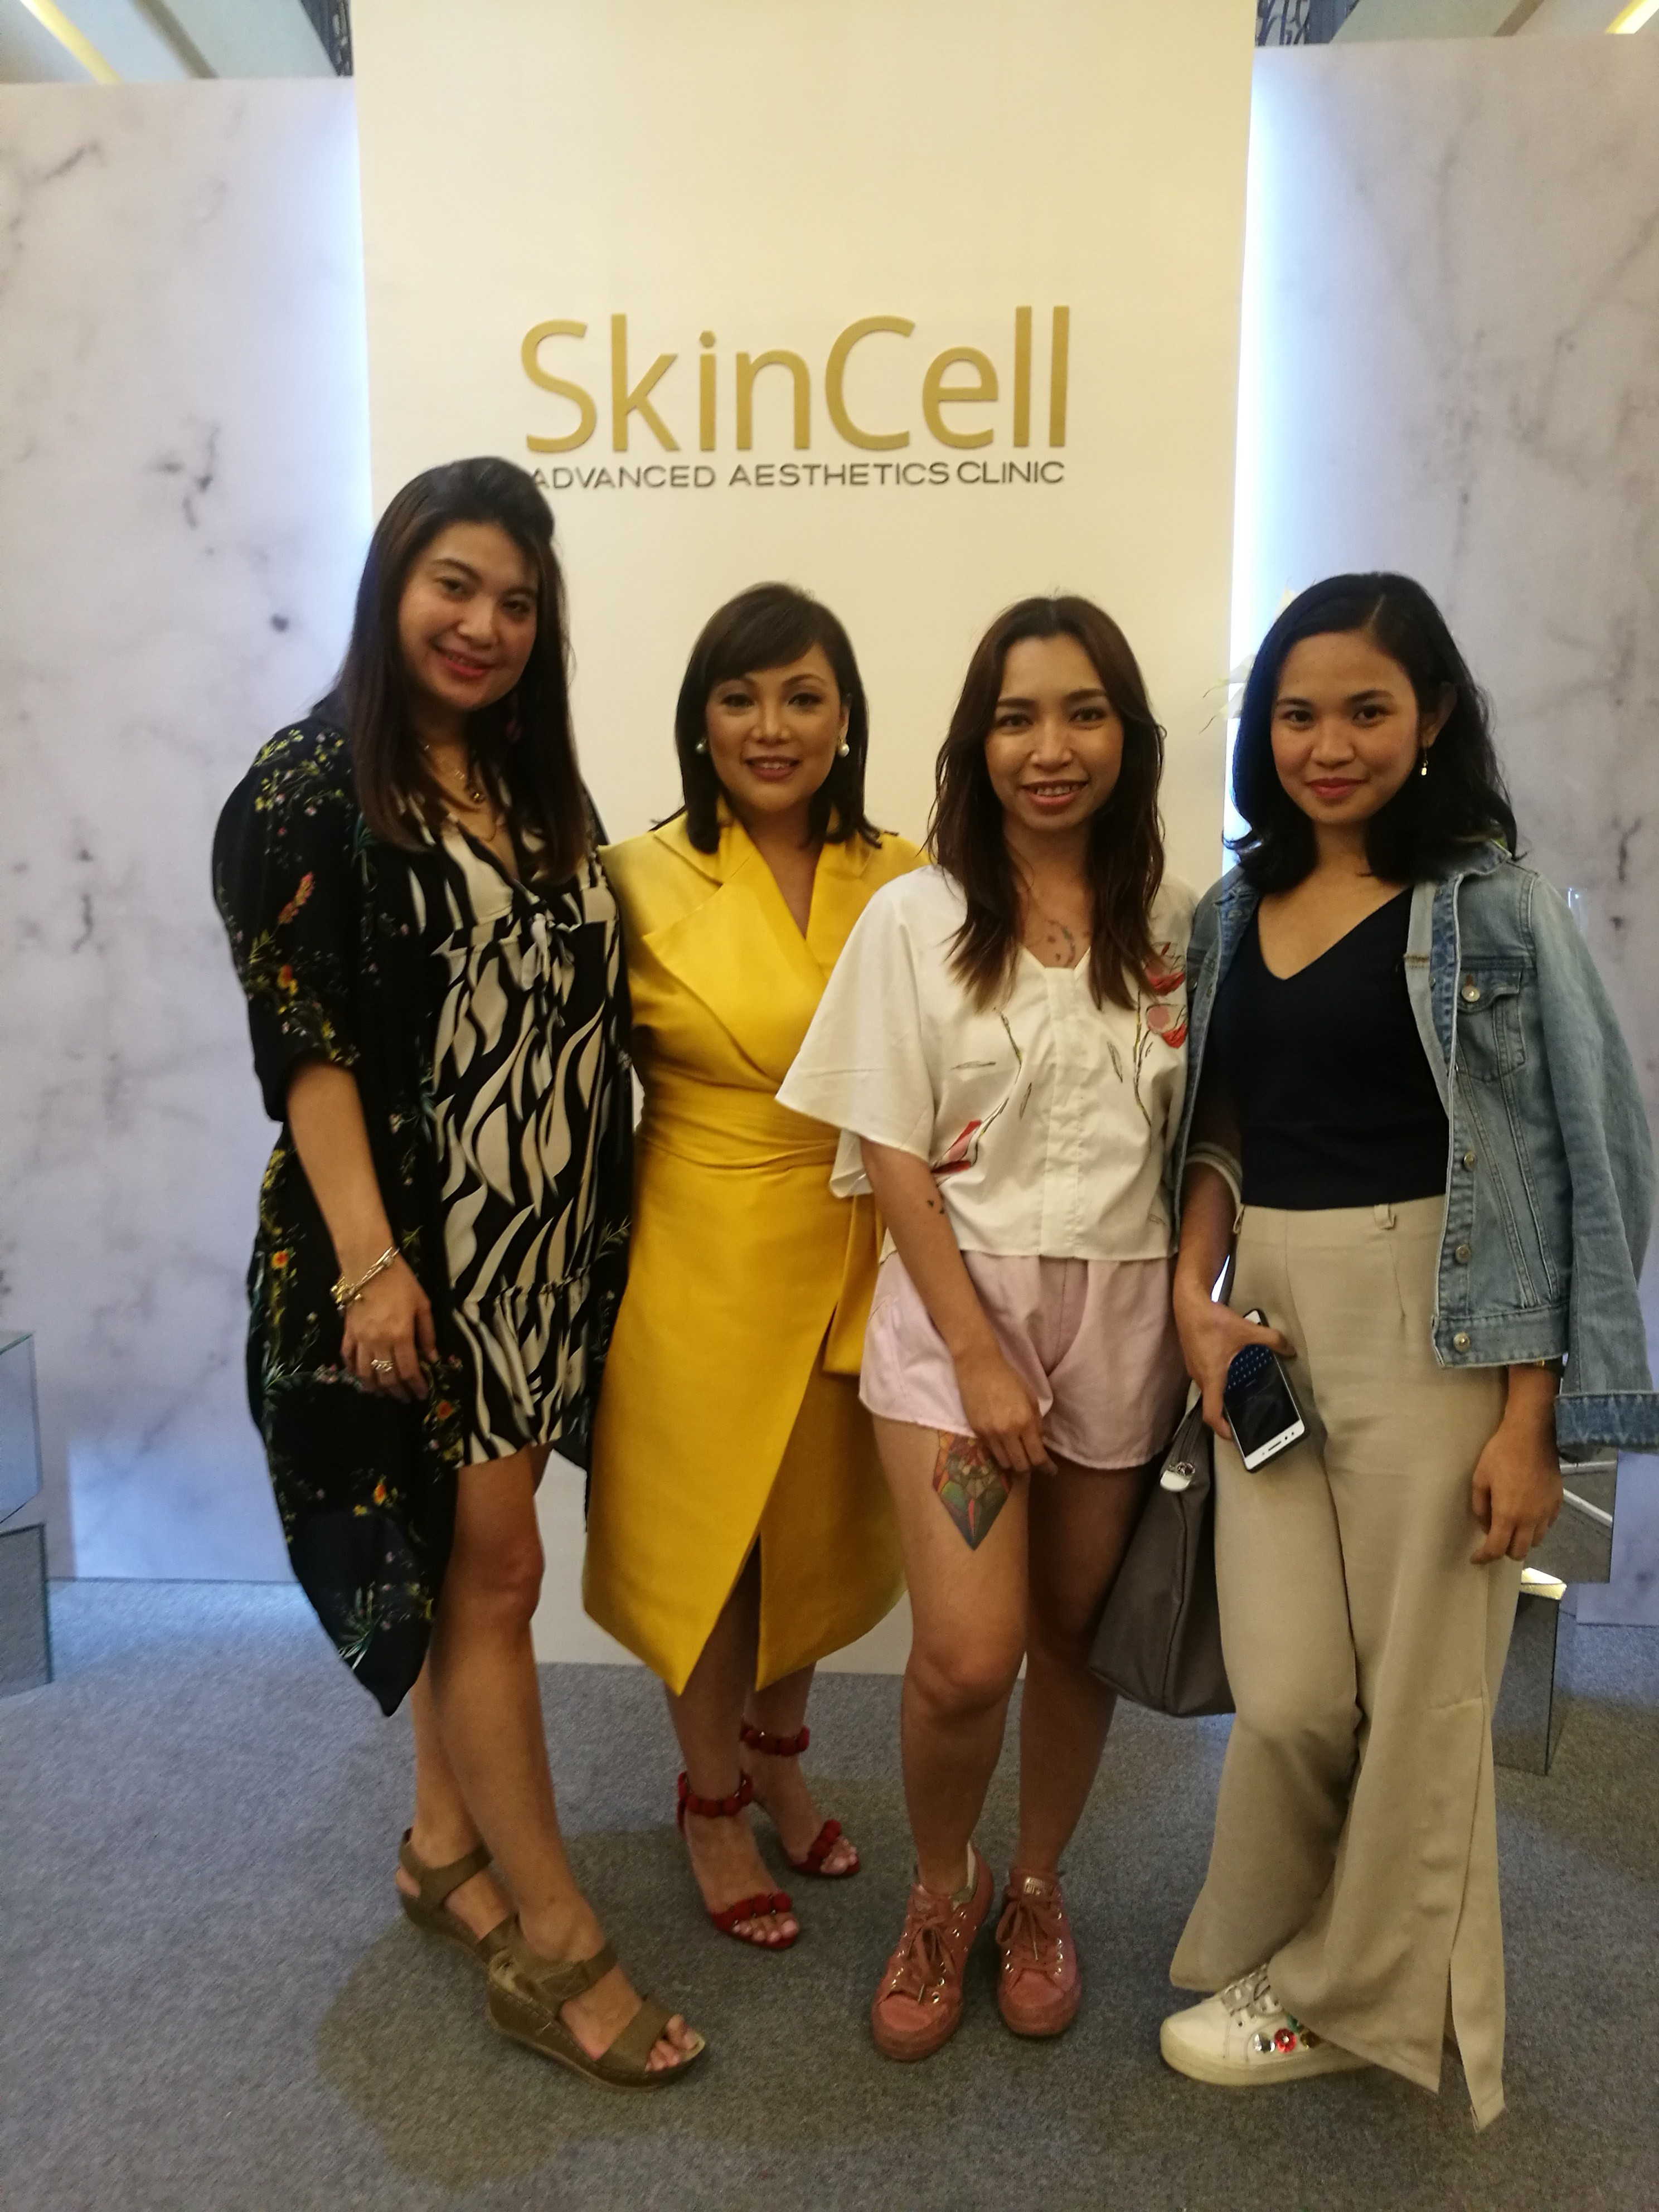 SkinCell Opens in Venice Piazza